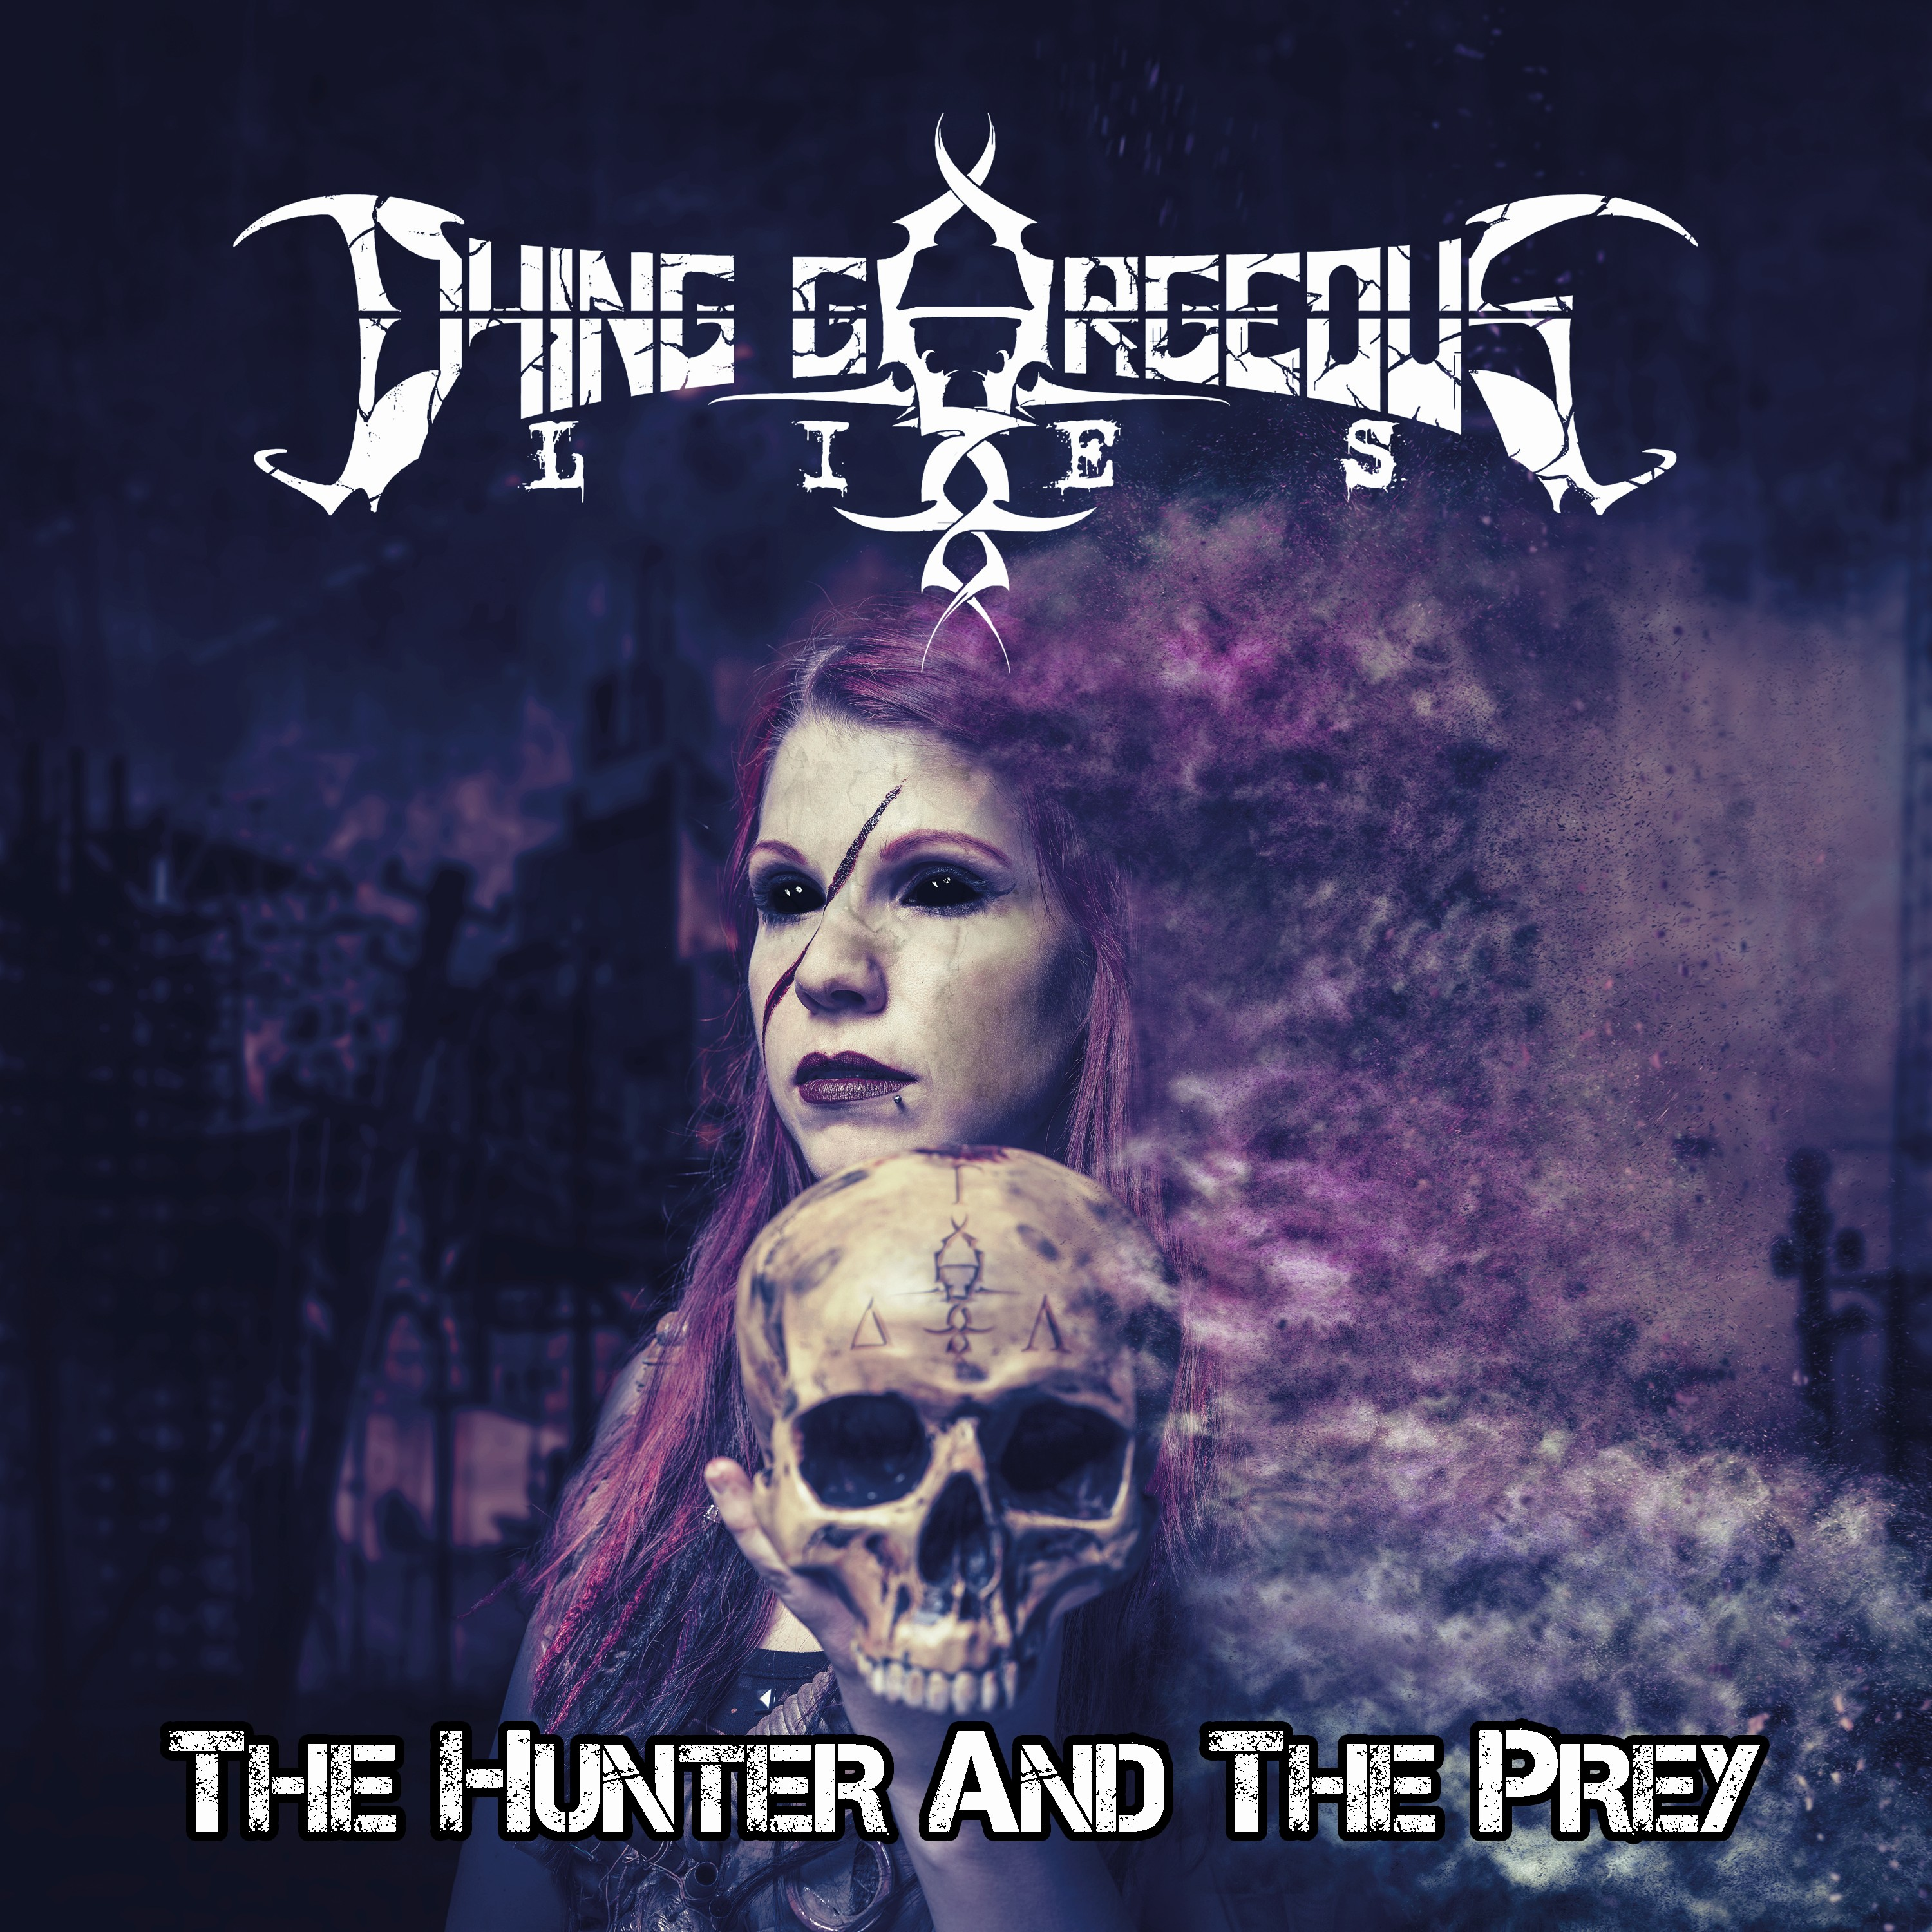 dying-gorgeous-lies-the-hunter-and-the-prey-ein-album-review